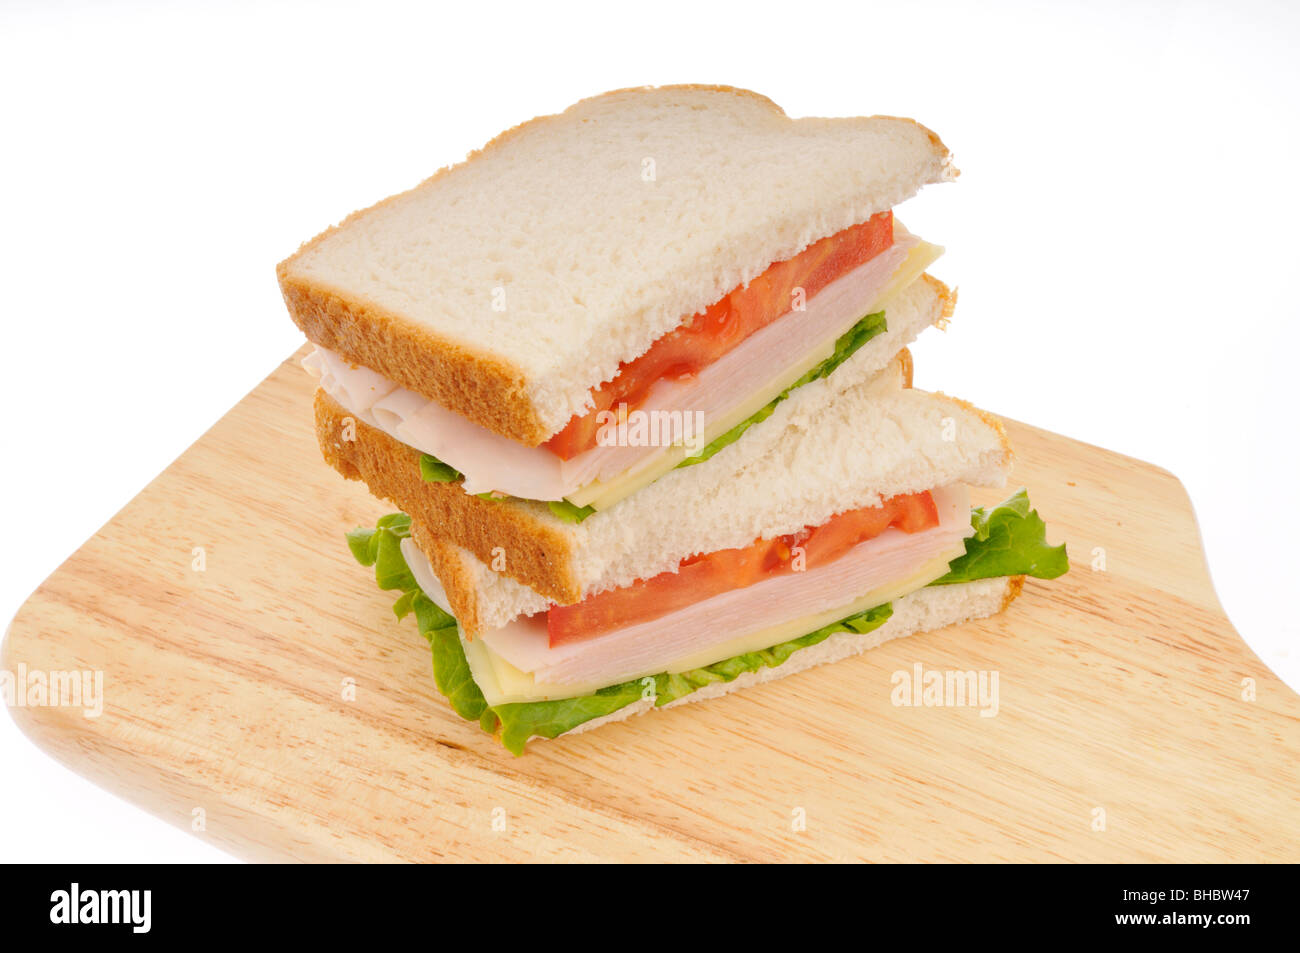 turkey and cheese sandwiche on white bread with lettuce and tomatoe stacked on a cutting board on white background. - Stock Image